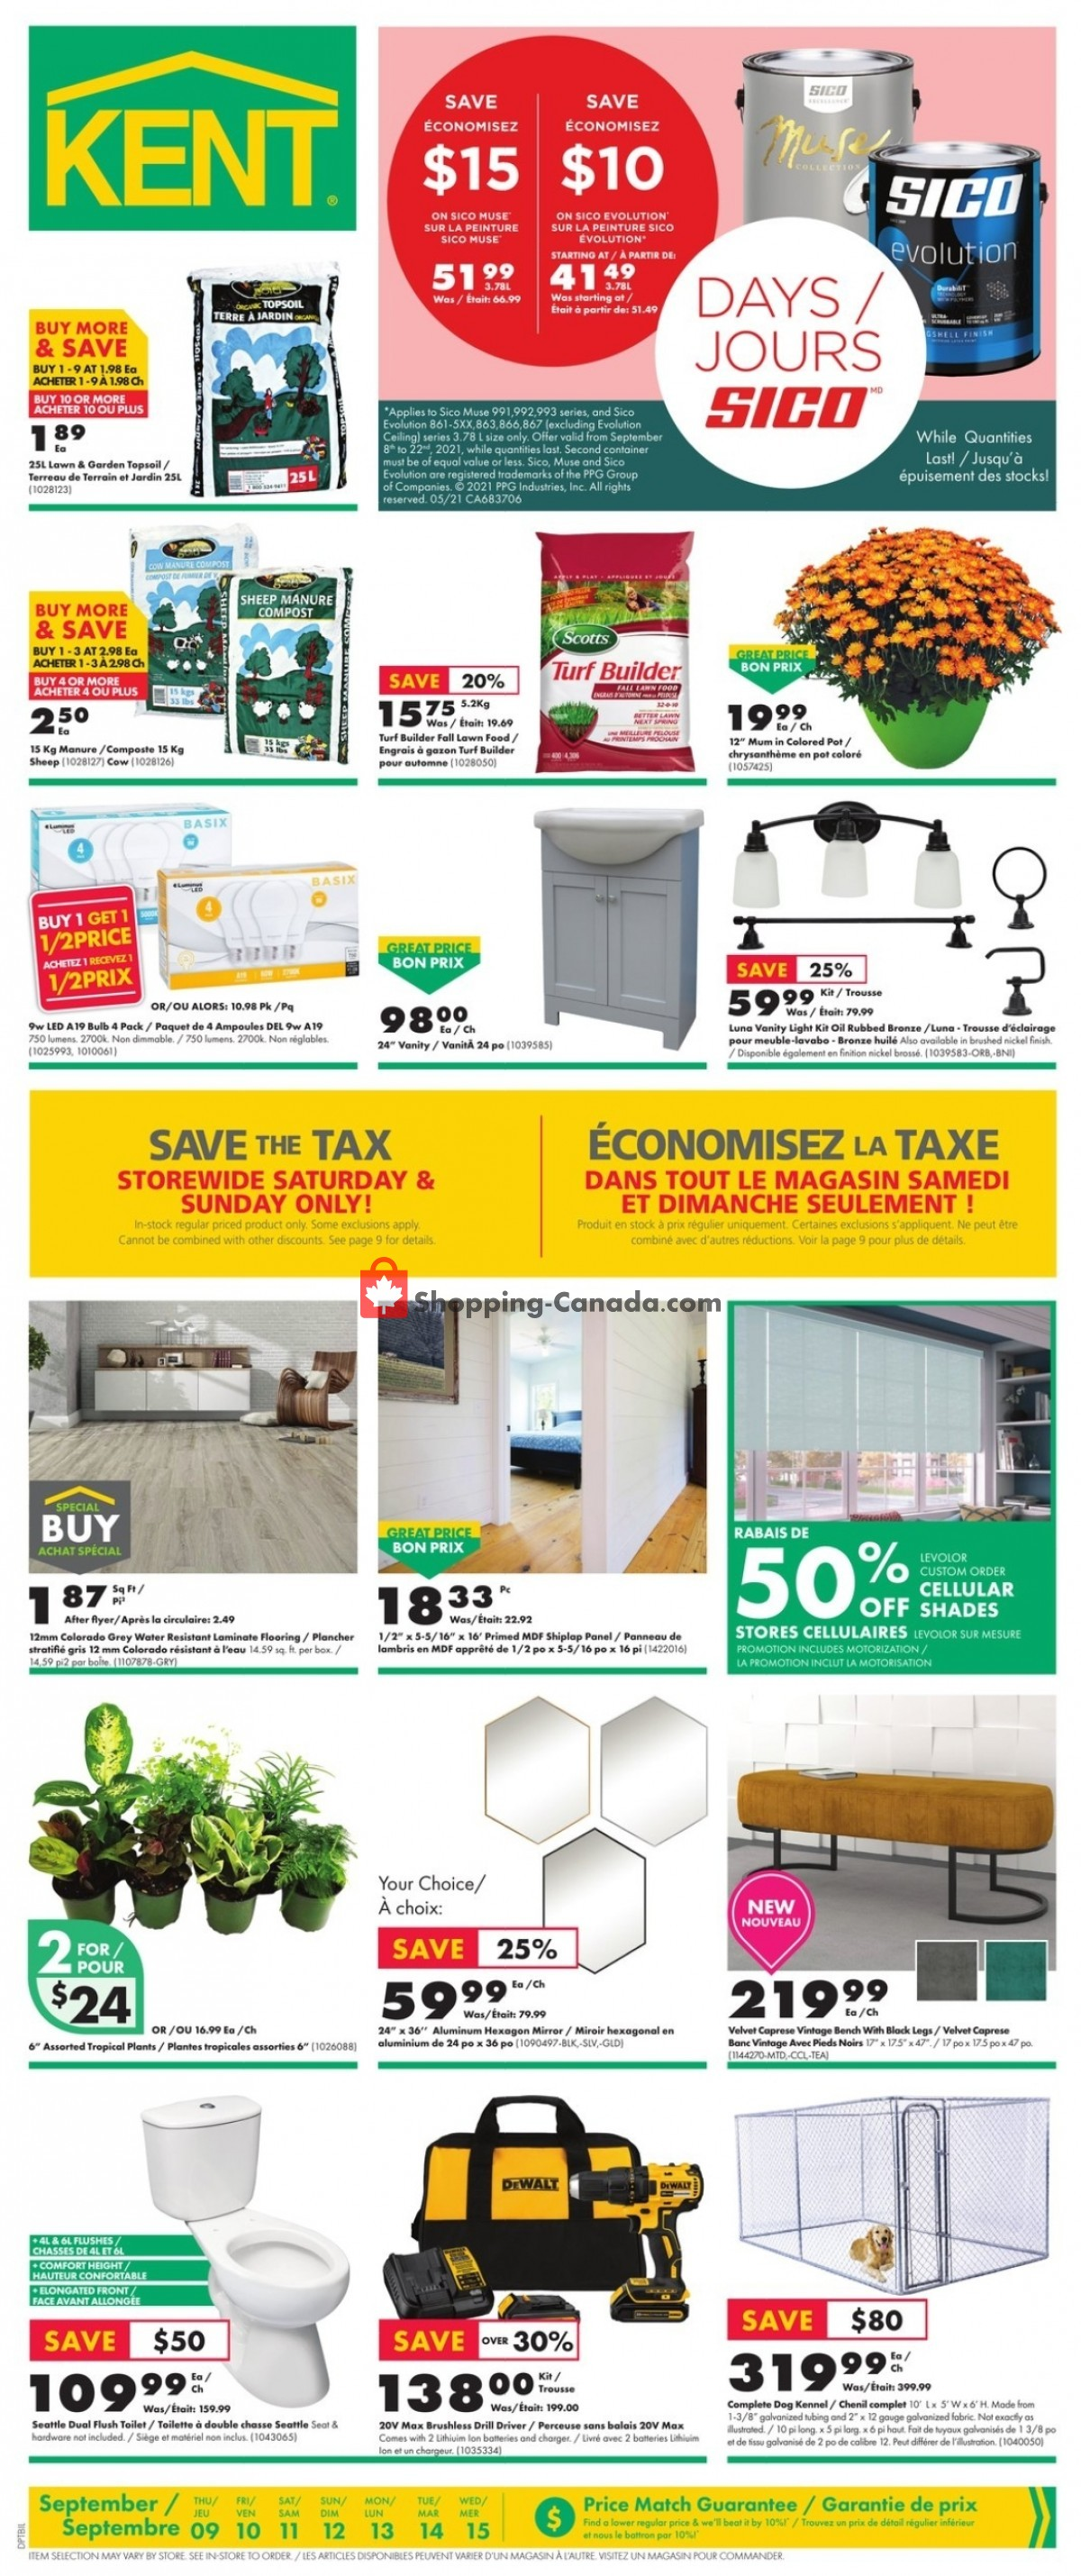 Flyer Kent Building Supplies Canada - from Thursday September 9, 2021 to Wednesday September 15, 2021